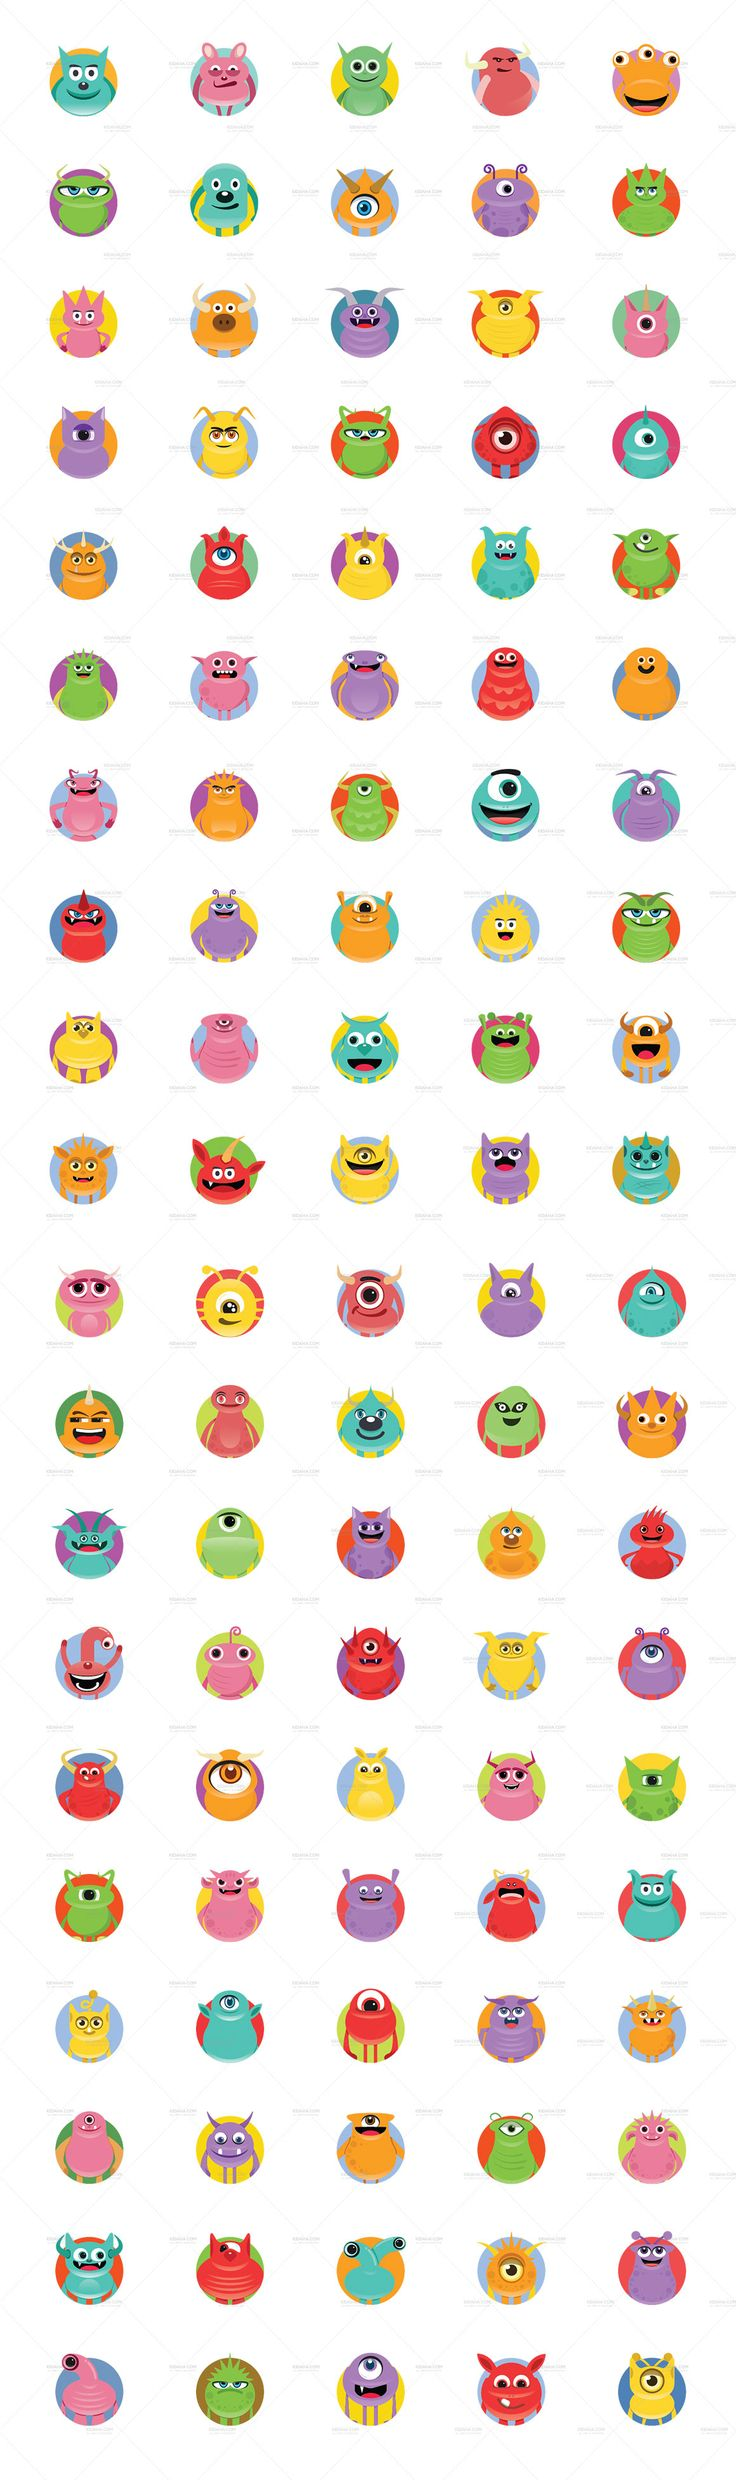 Monster Version 3 Character Stickers Clip Arts Monster Version 3 character is a mega collection of clip artswhich you can use to create awesome characters for both personal and commercial use, it comes with 100+ premadecharacters + avatars. Scroll to see all & Download ! Updates for free in the future.